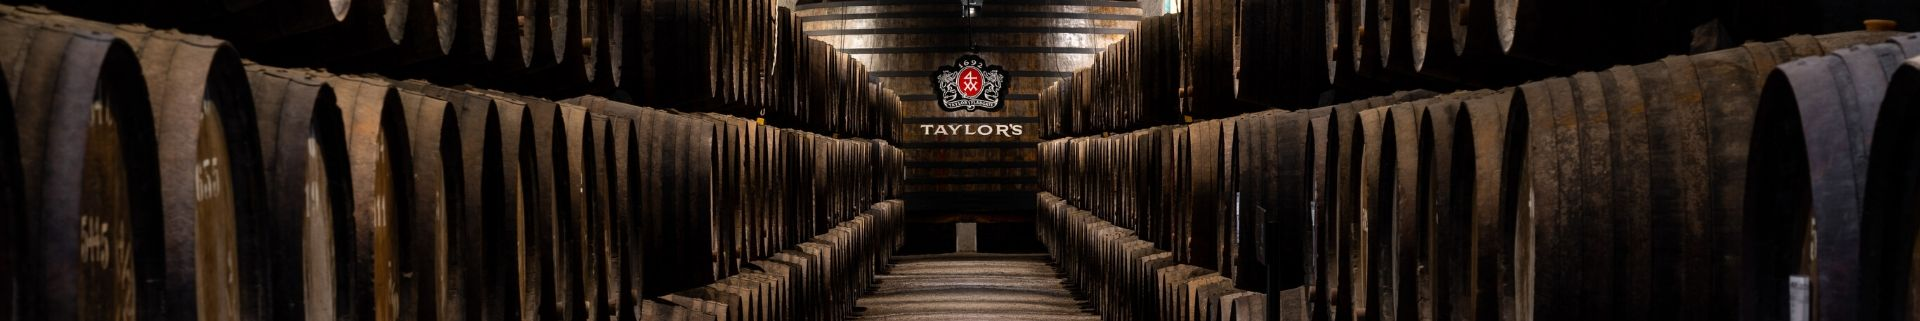 Buy your tickets securely online and save time on your arrival at Taylor's Port cellars.  The audio tour is self-guided and is available in...